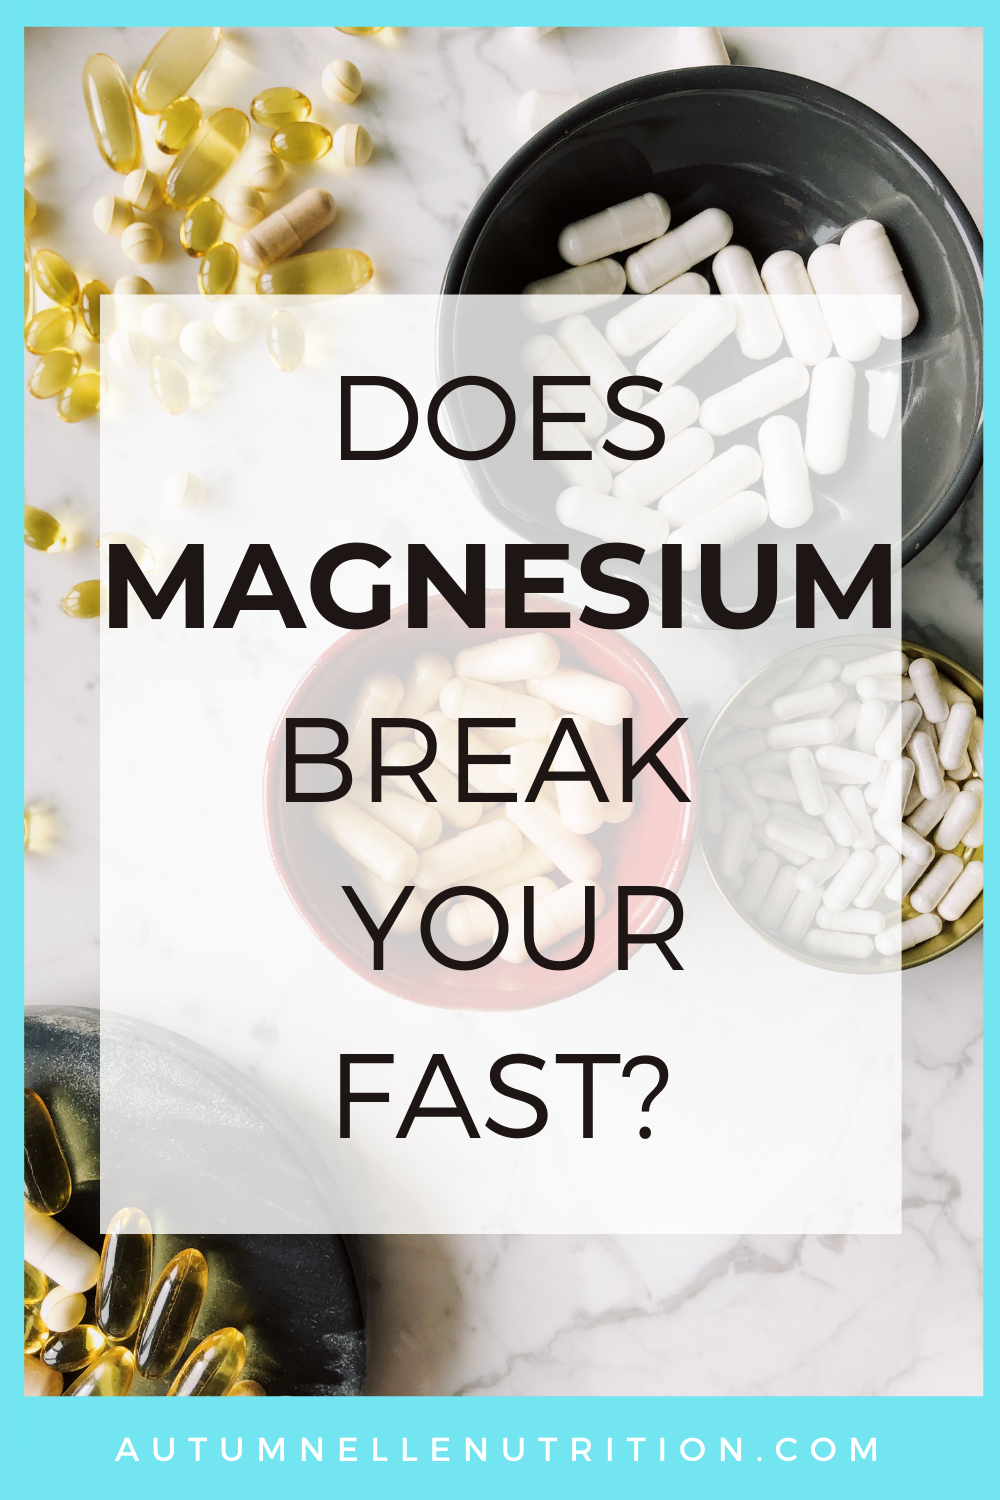 Does Magnesium Break A Fast?